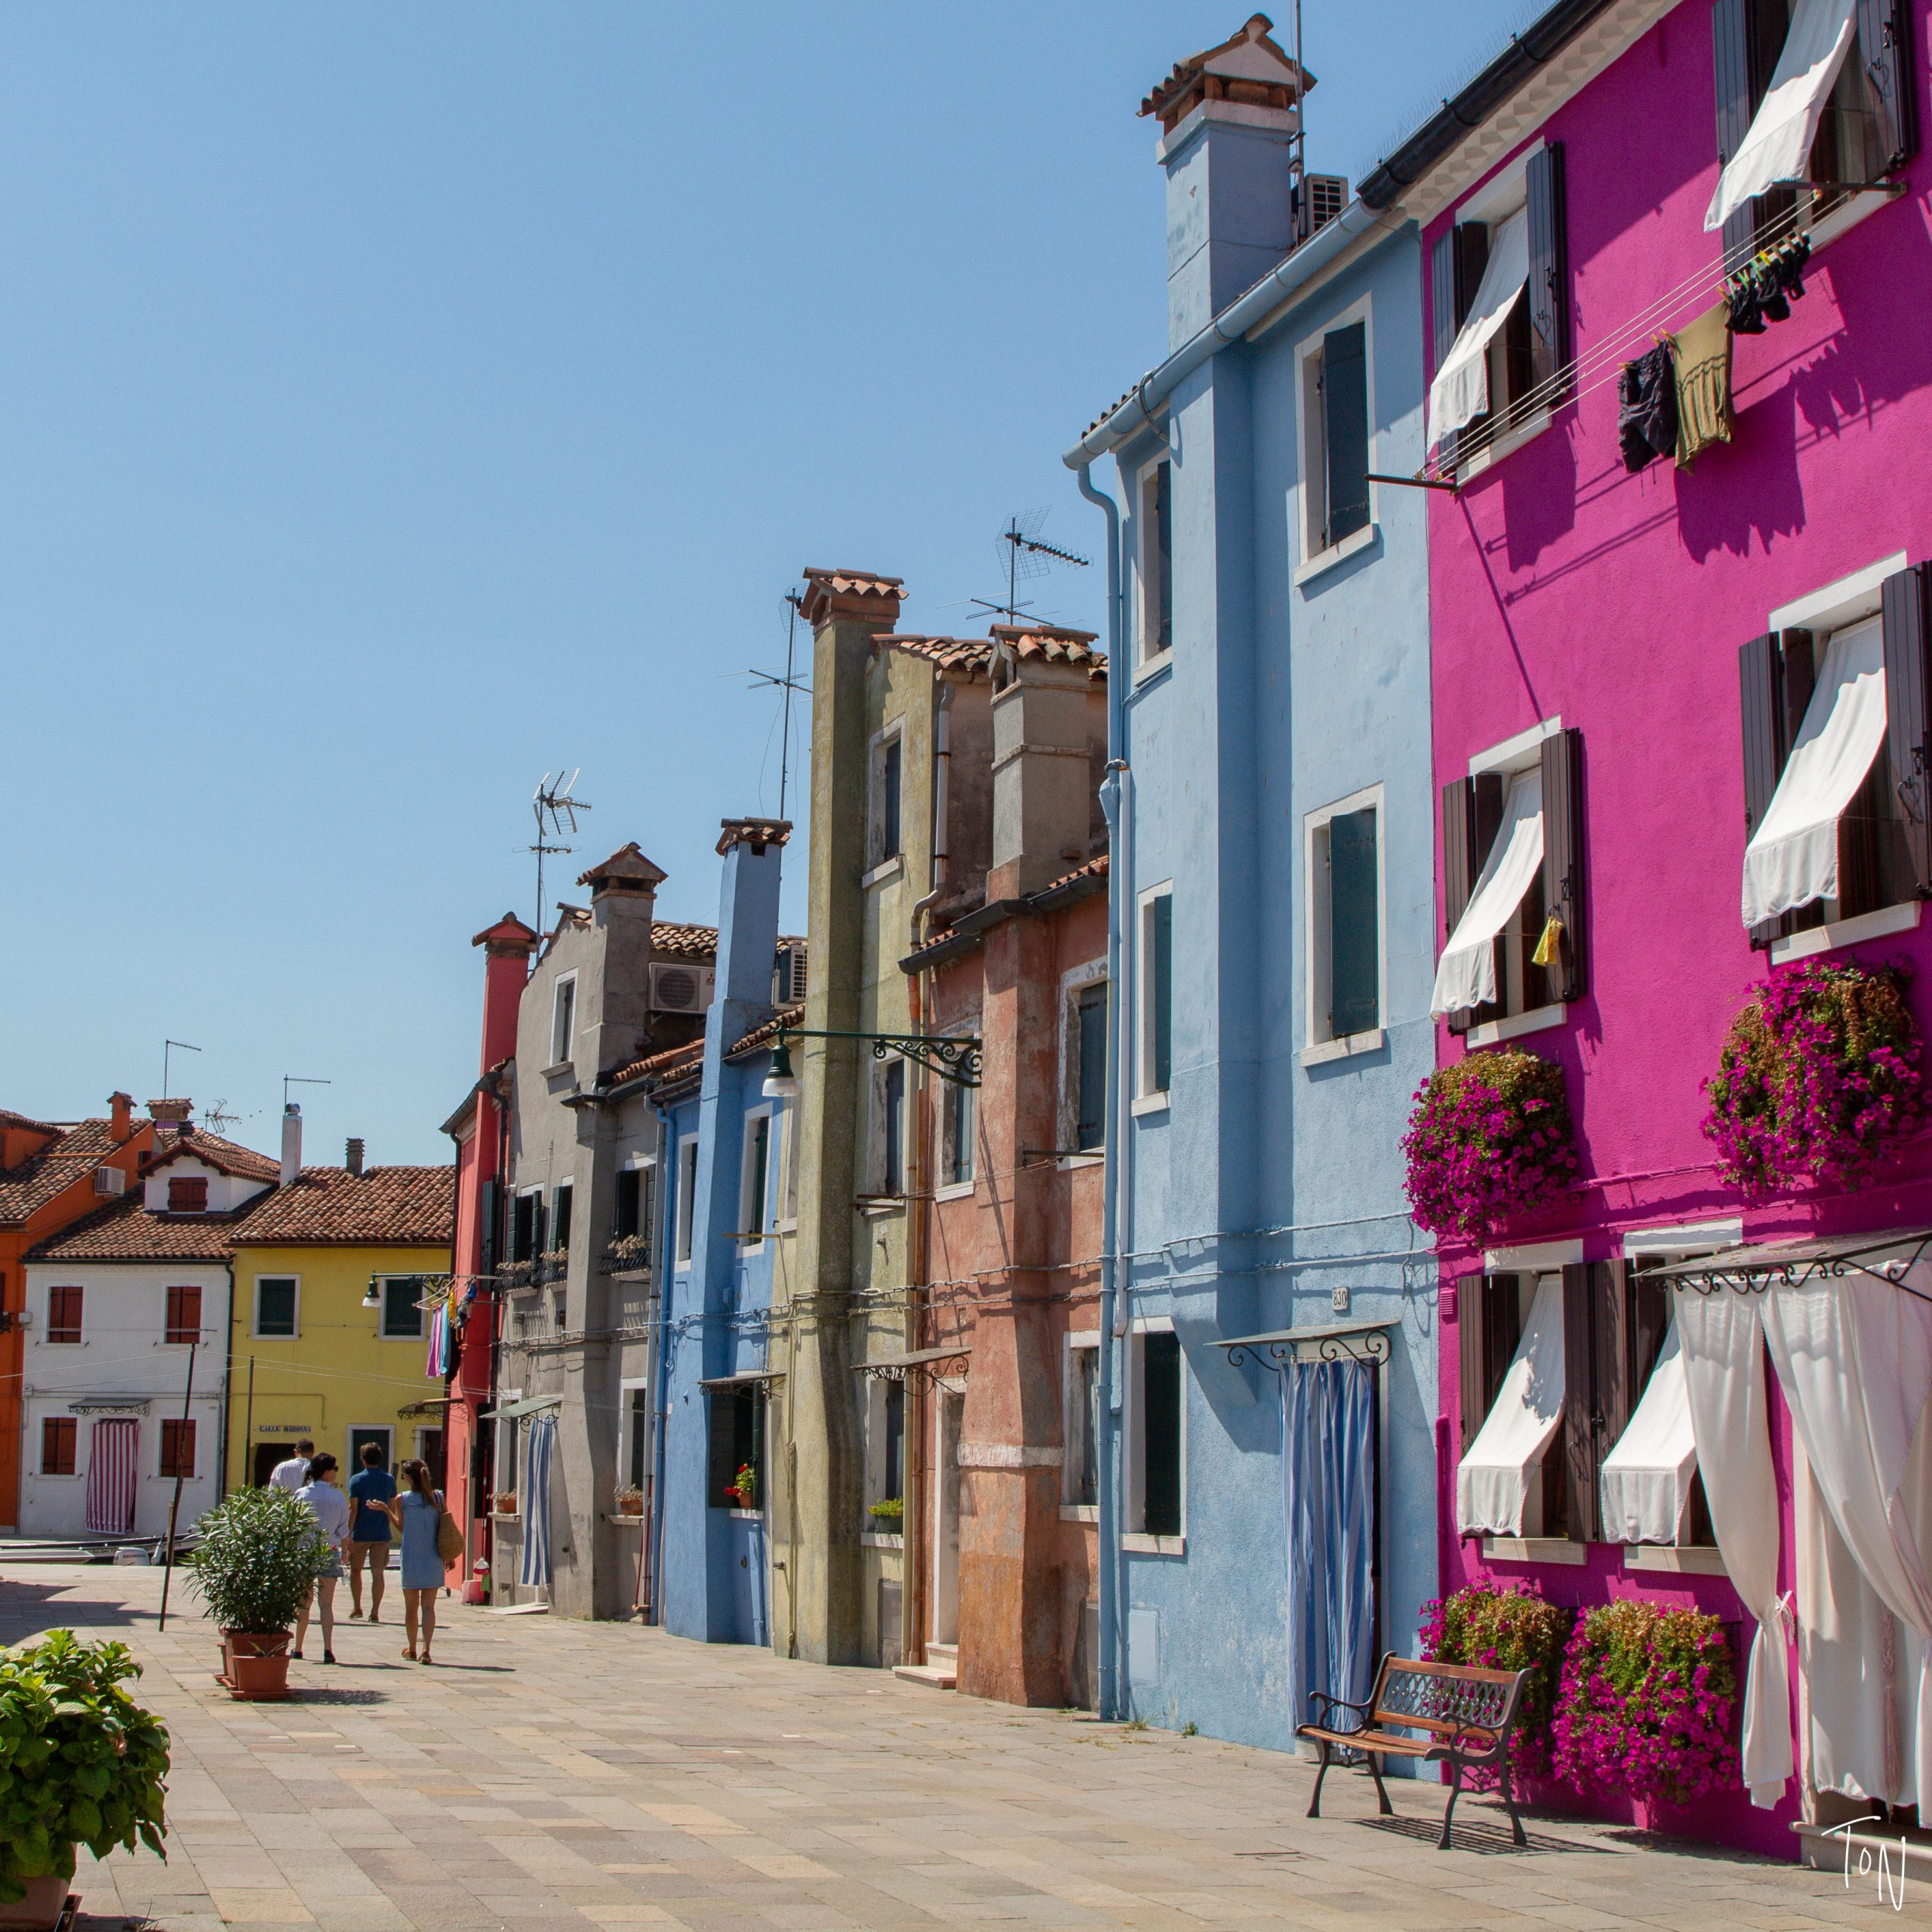 Burano Island in Venice, known for lace and colorful houses